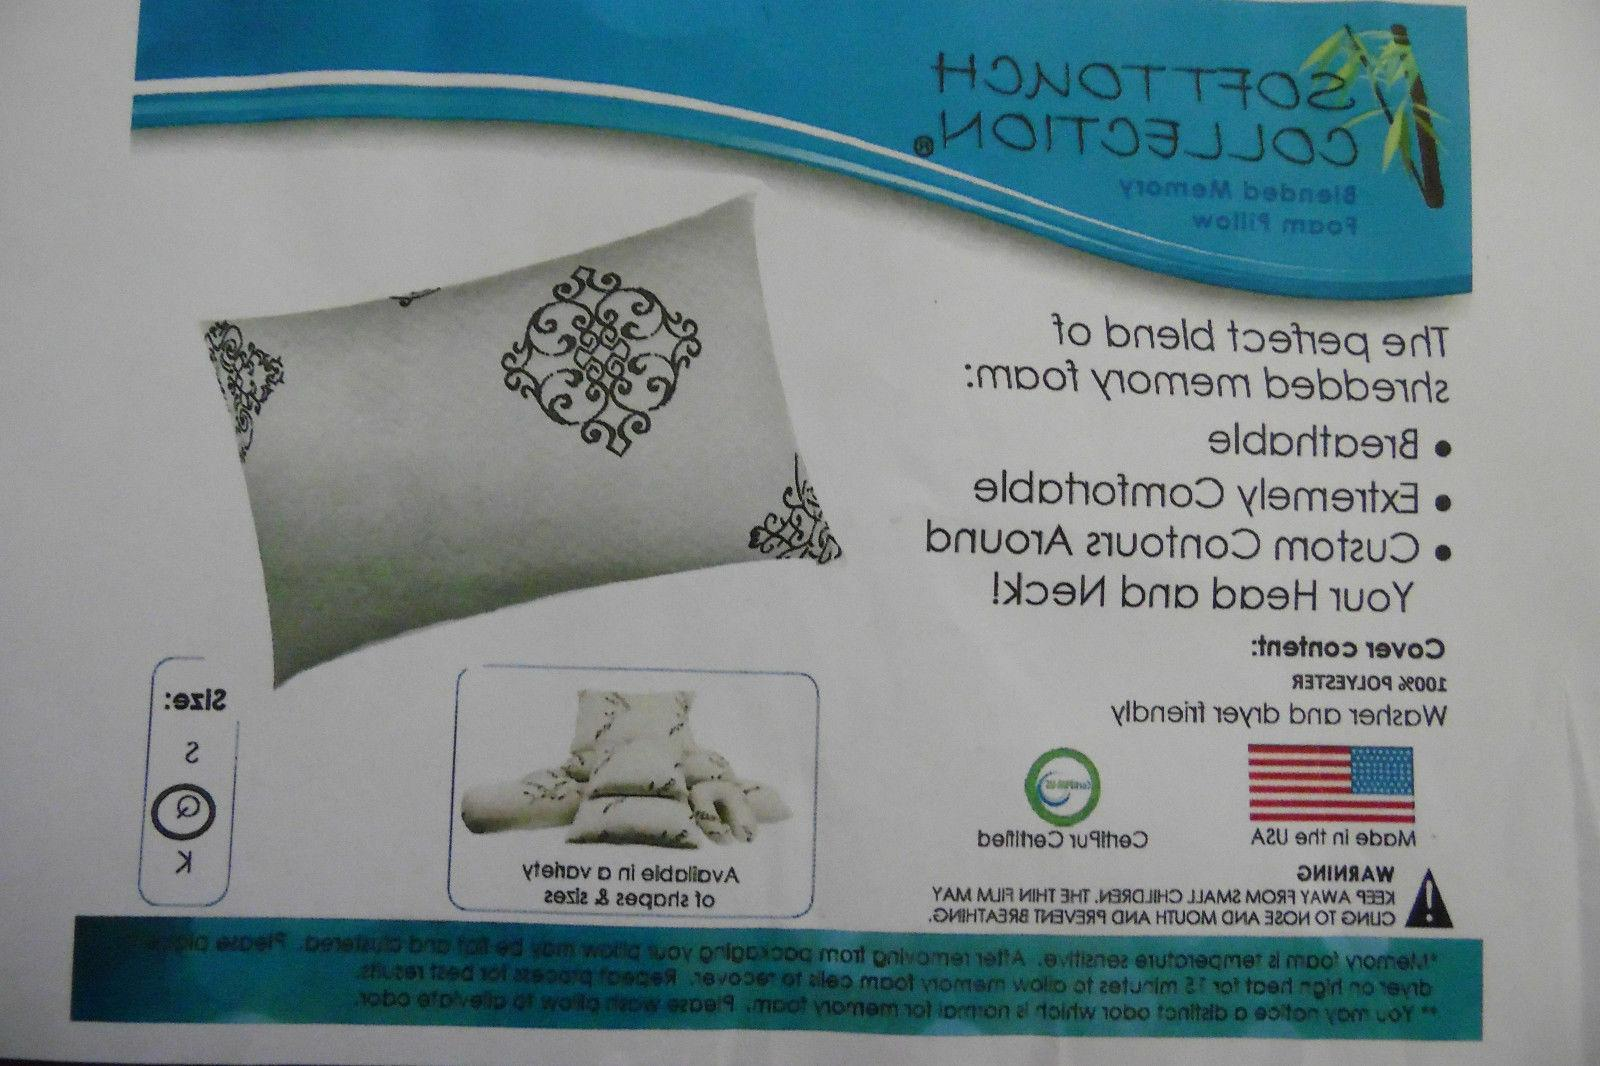 MADE USA BAMBOO MEMORY HELPS BREATHING AND SNORING